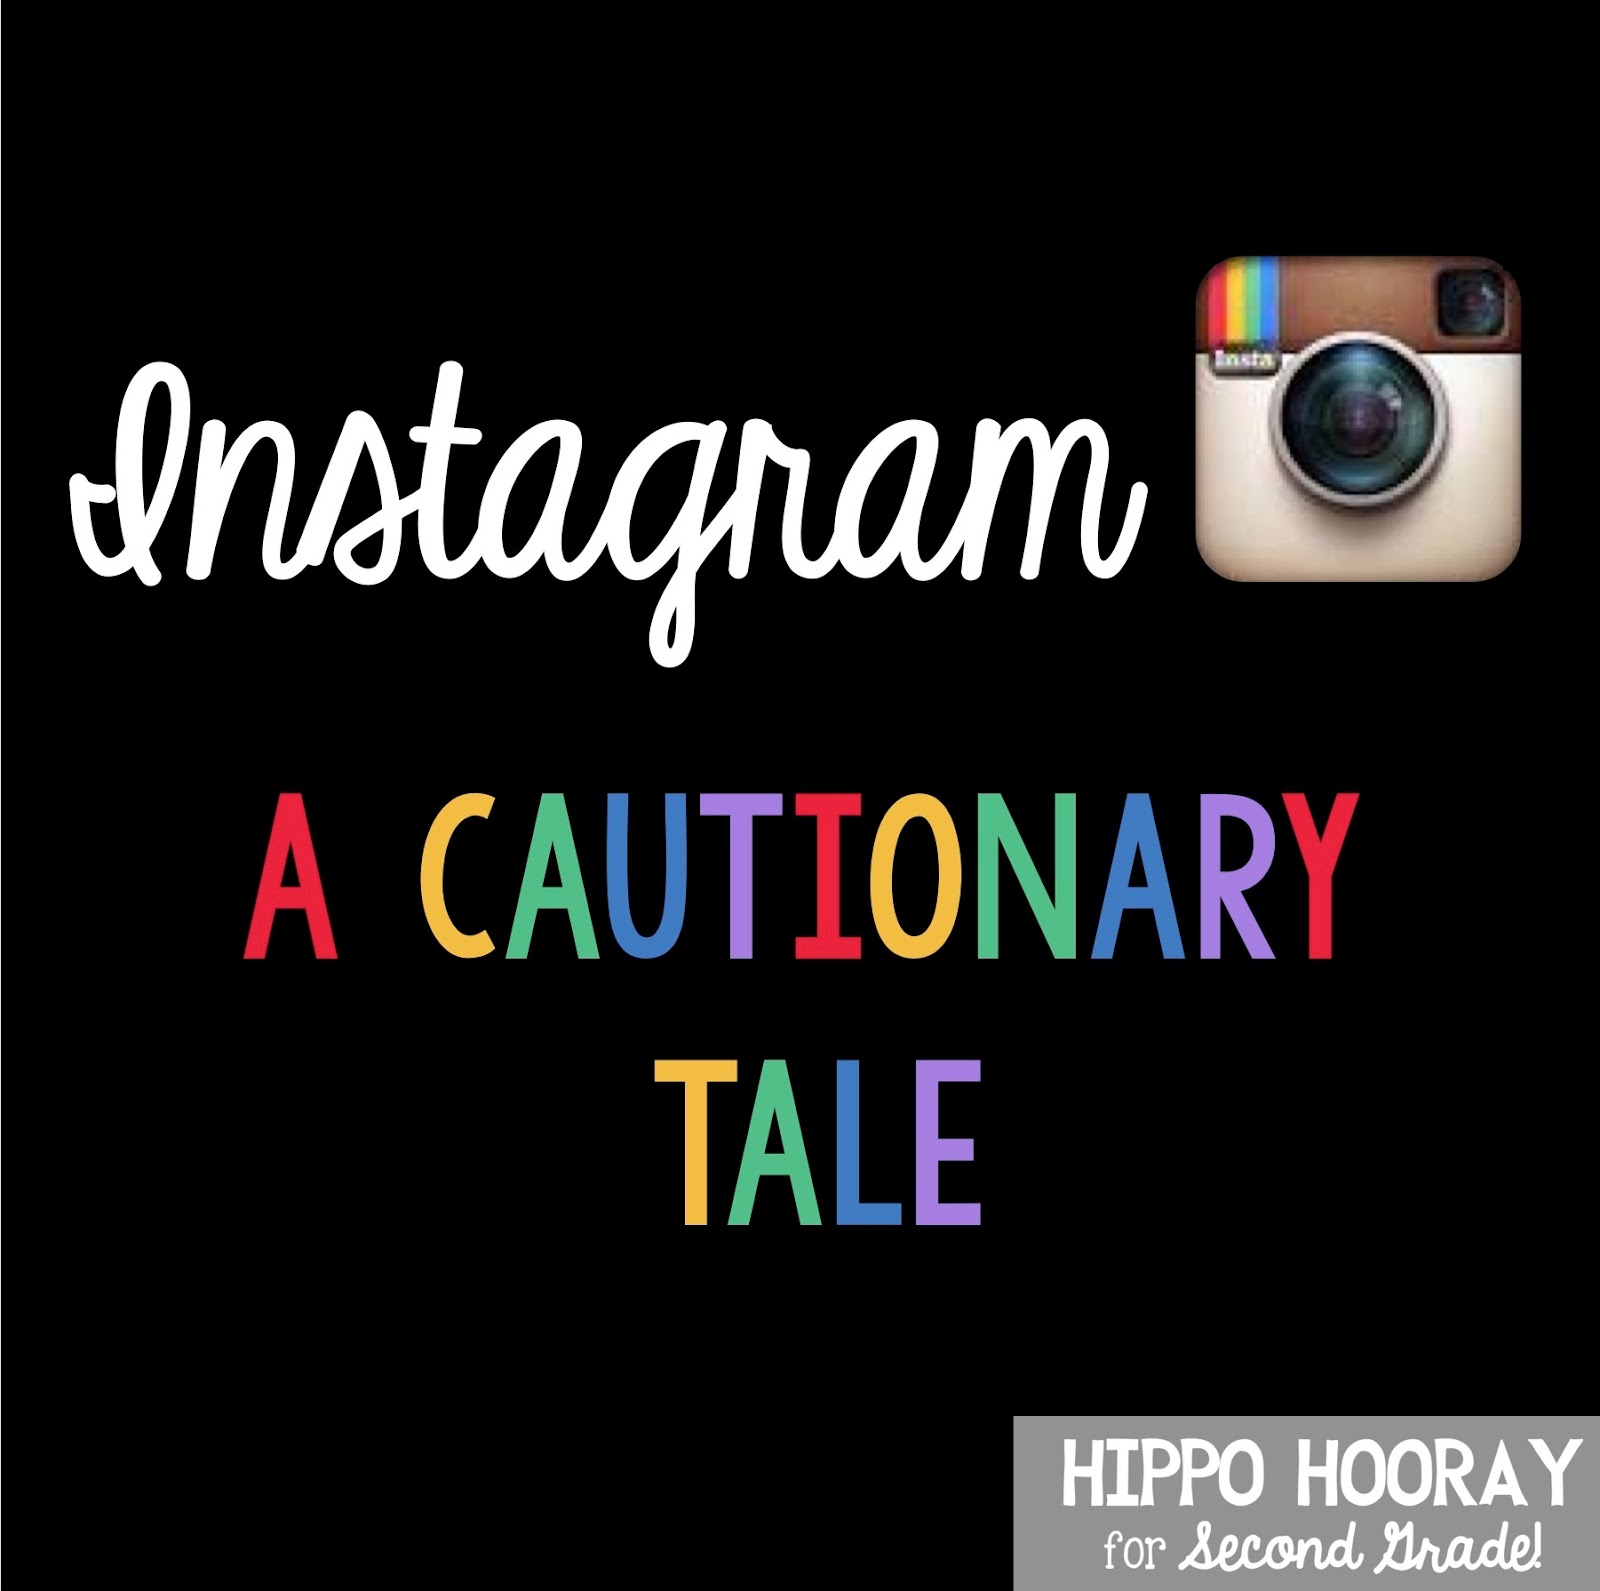 http://hippohoorayforsecondgrade.blogspot.com/2015/02/instagram-cautionary-tale.html#comment-form